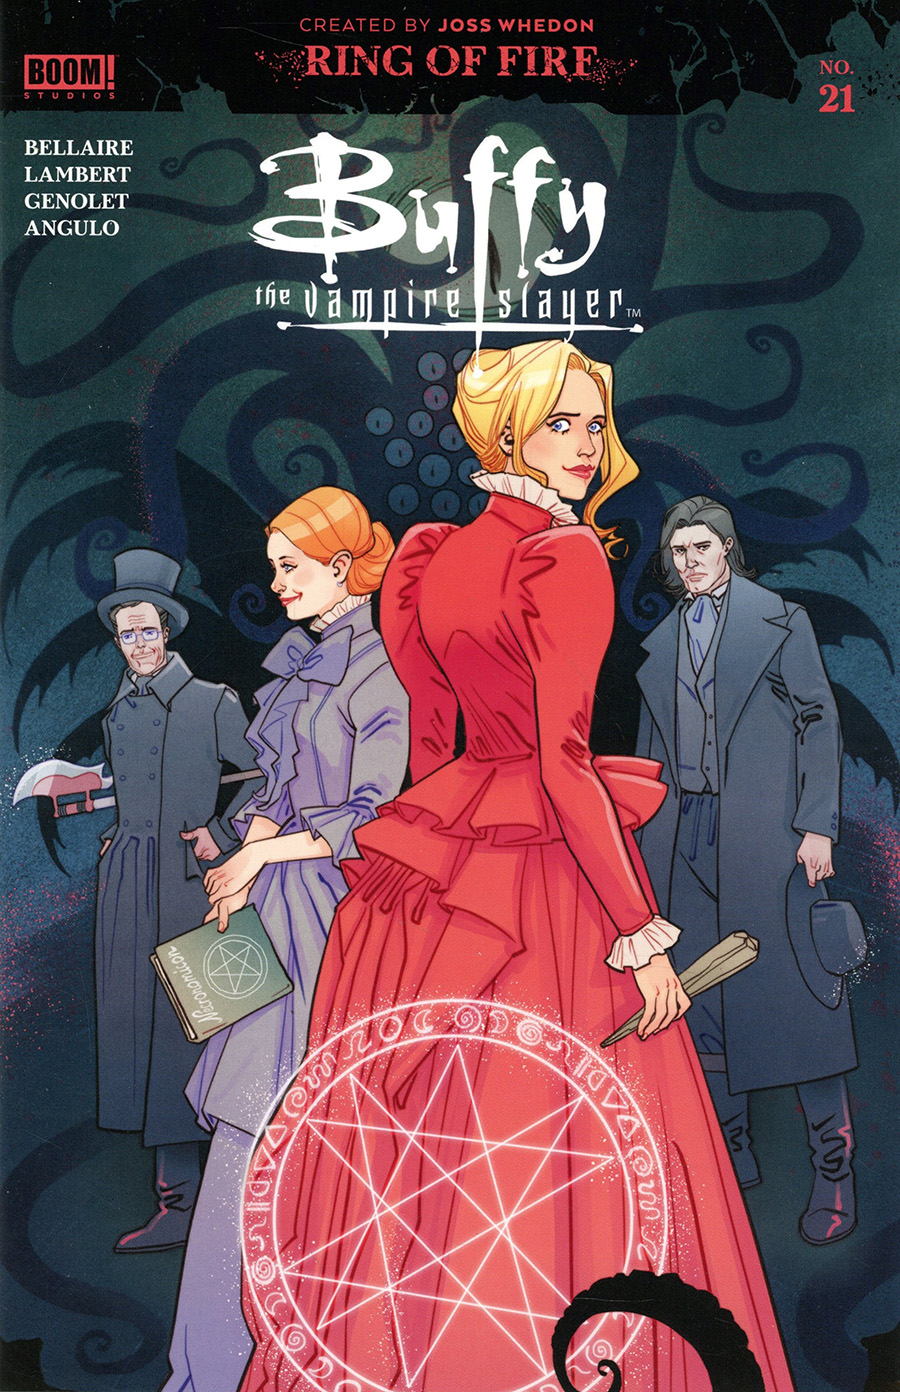 Buffy The Vampire Slayer Vol 2 #21 Cover B Variant Marguerite Sauvage Multiverse Cover